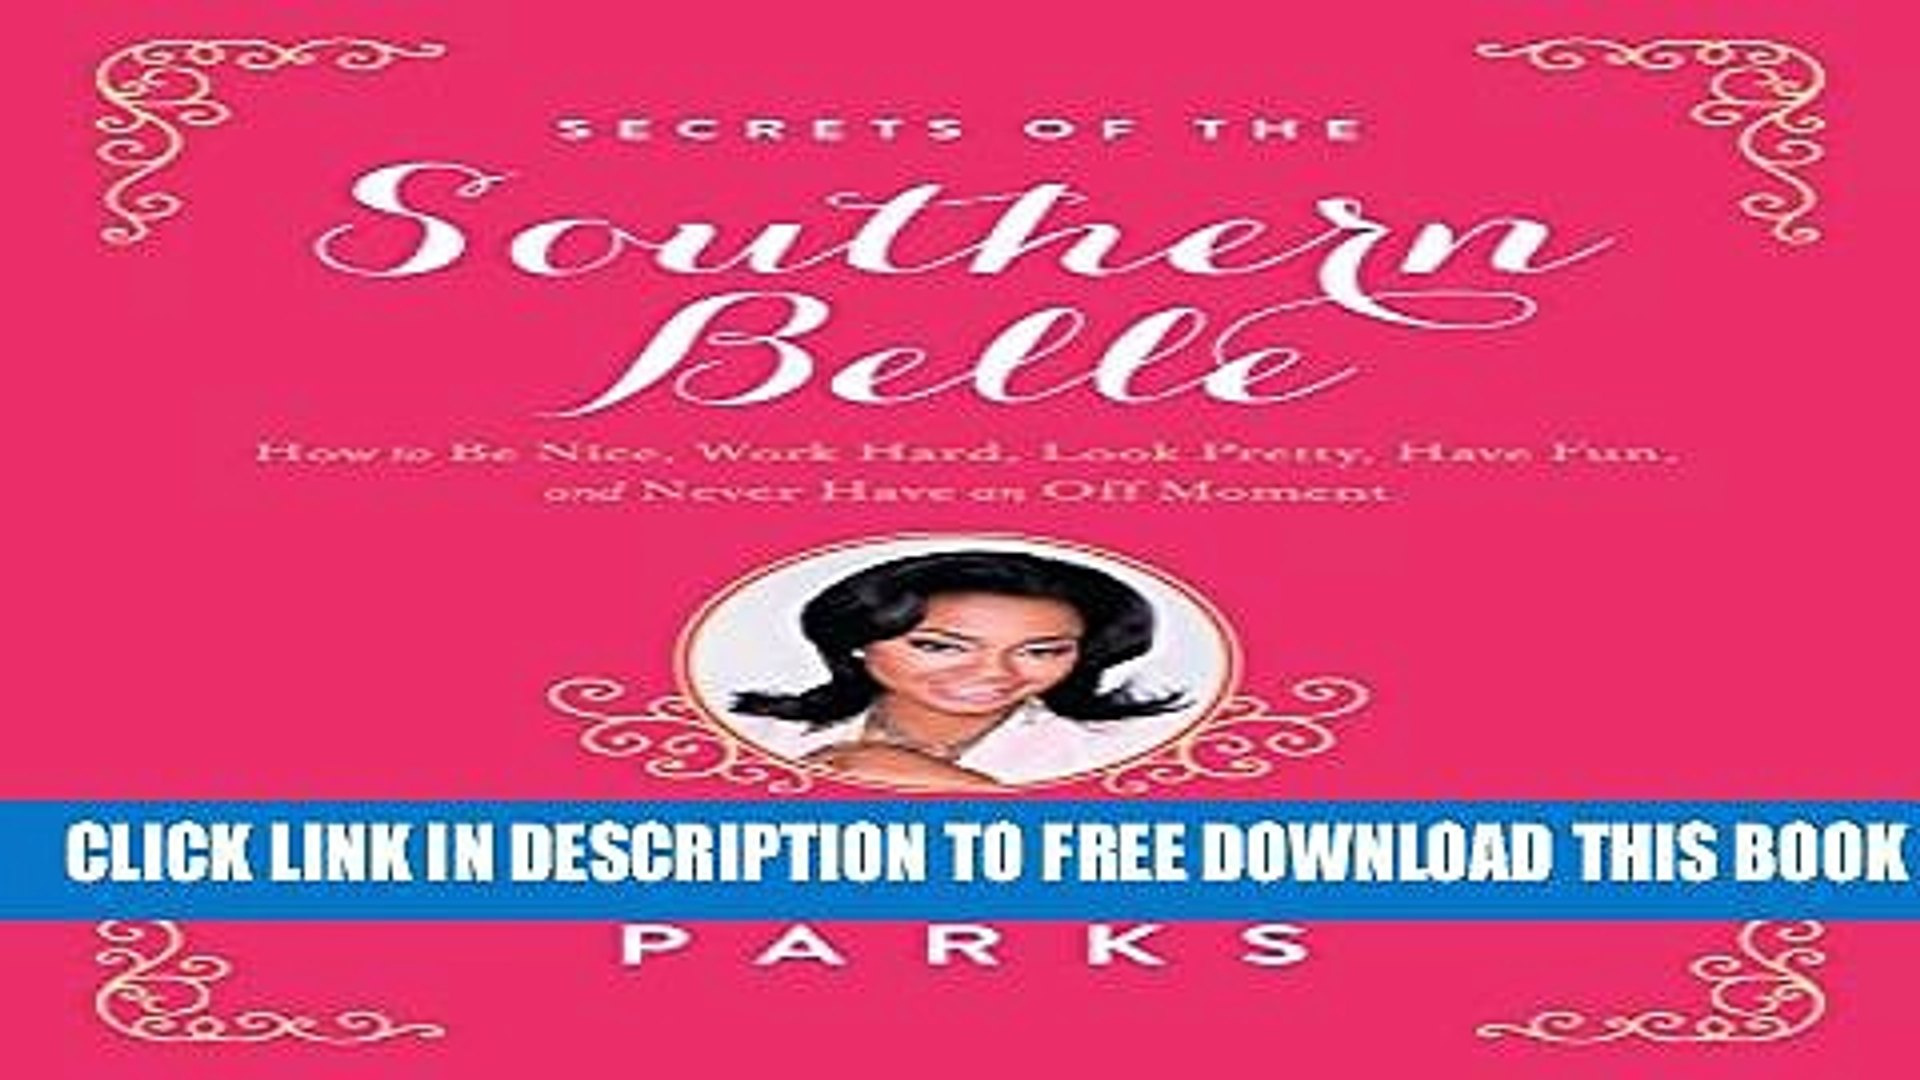 [EBOOK] DOWNLOAD Secrets of the Southern Belle: How to Be Nice, Work Hard, Look Pretty, Have Fun,